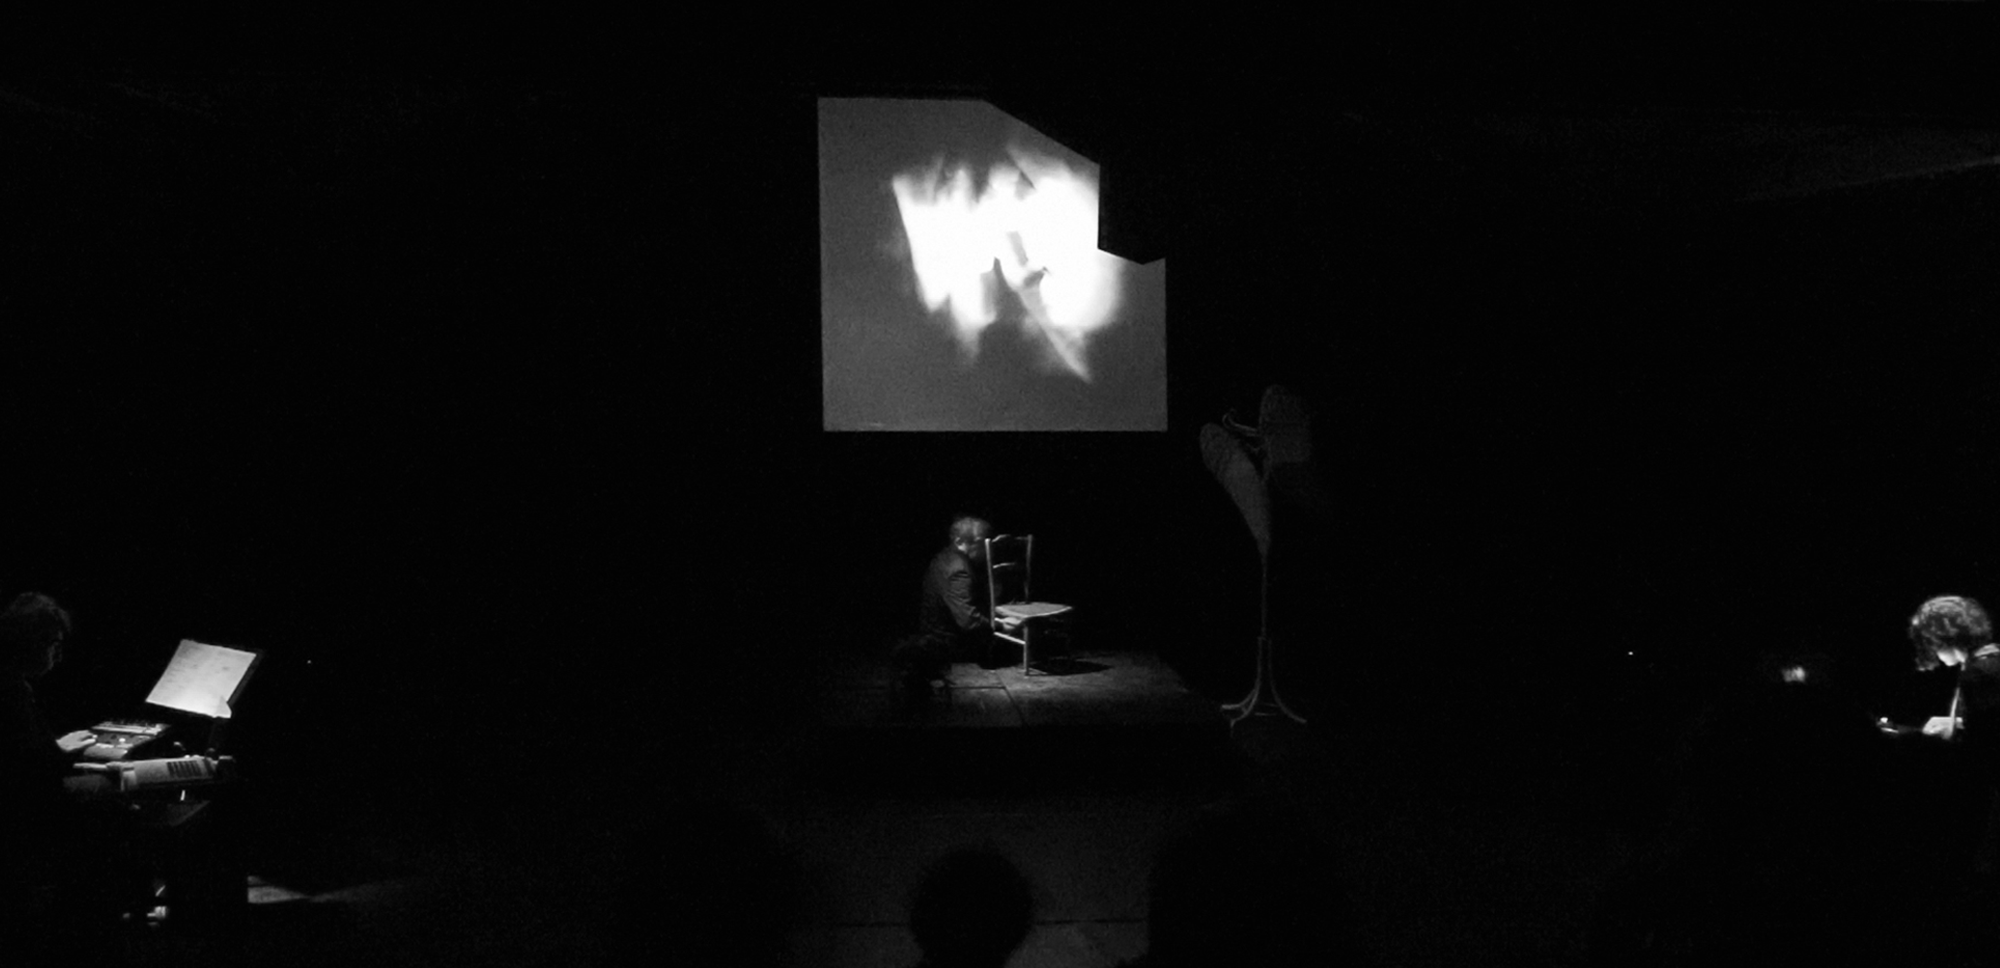 Live visuals for a theatre play